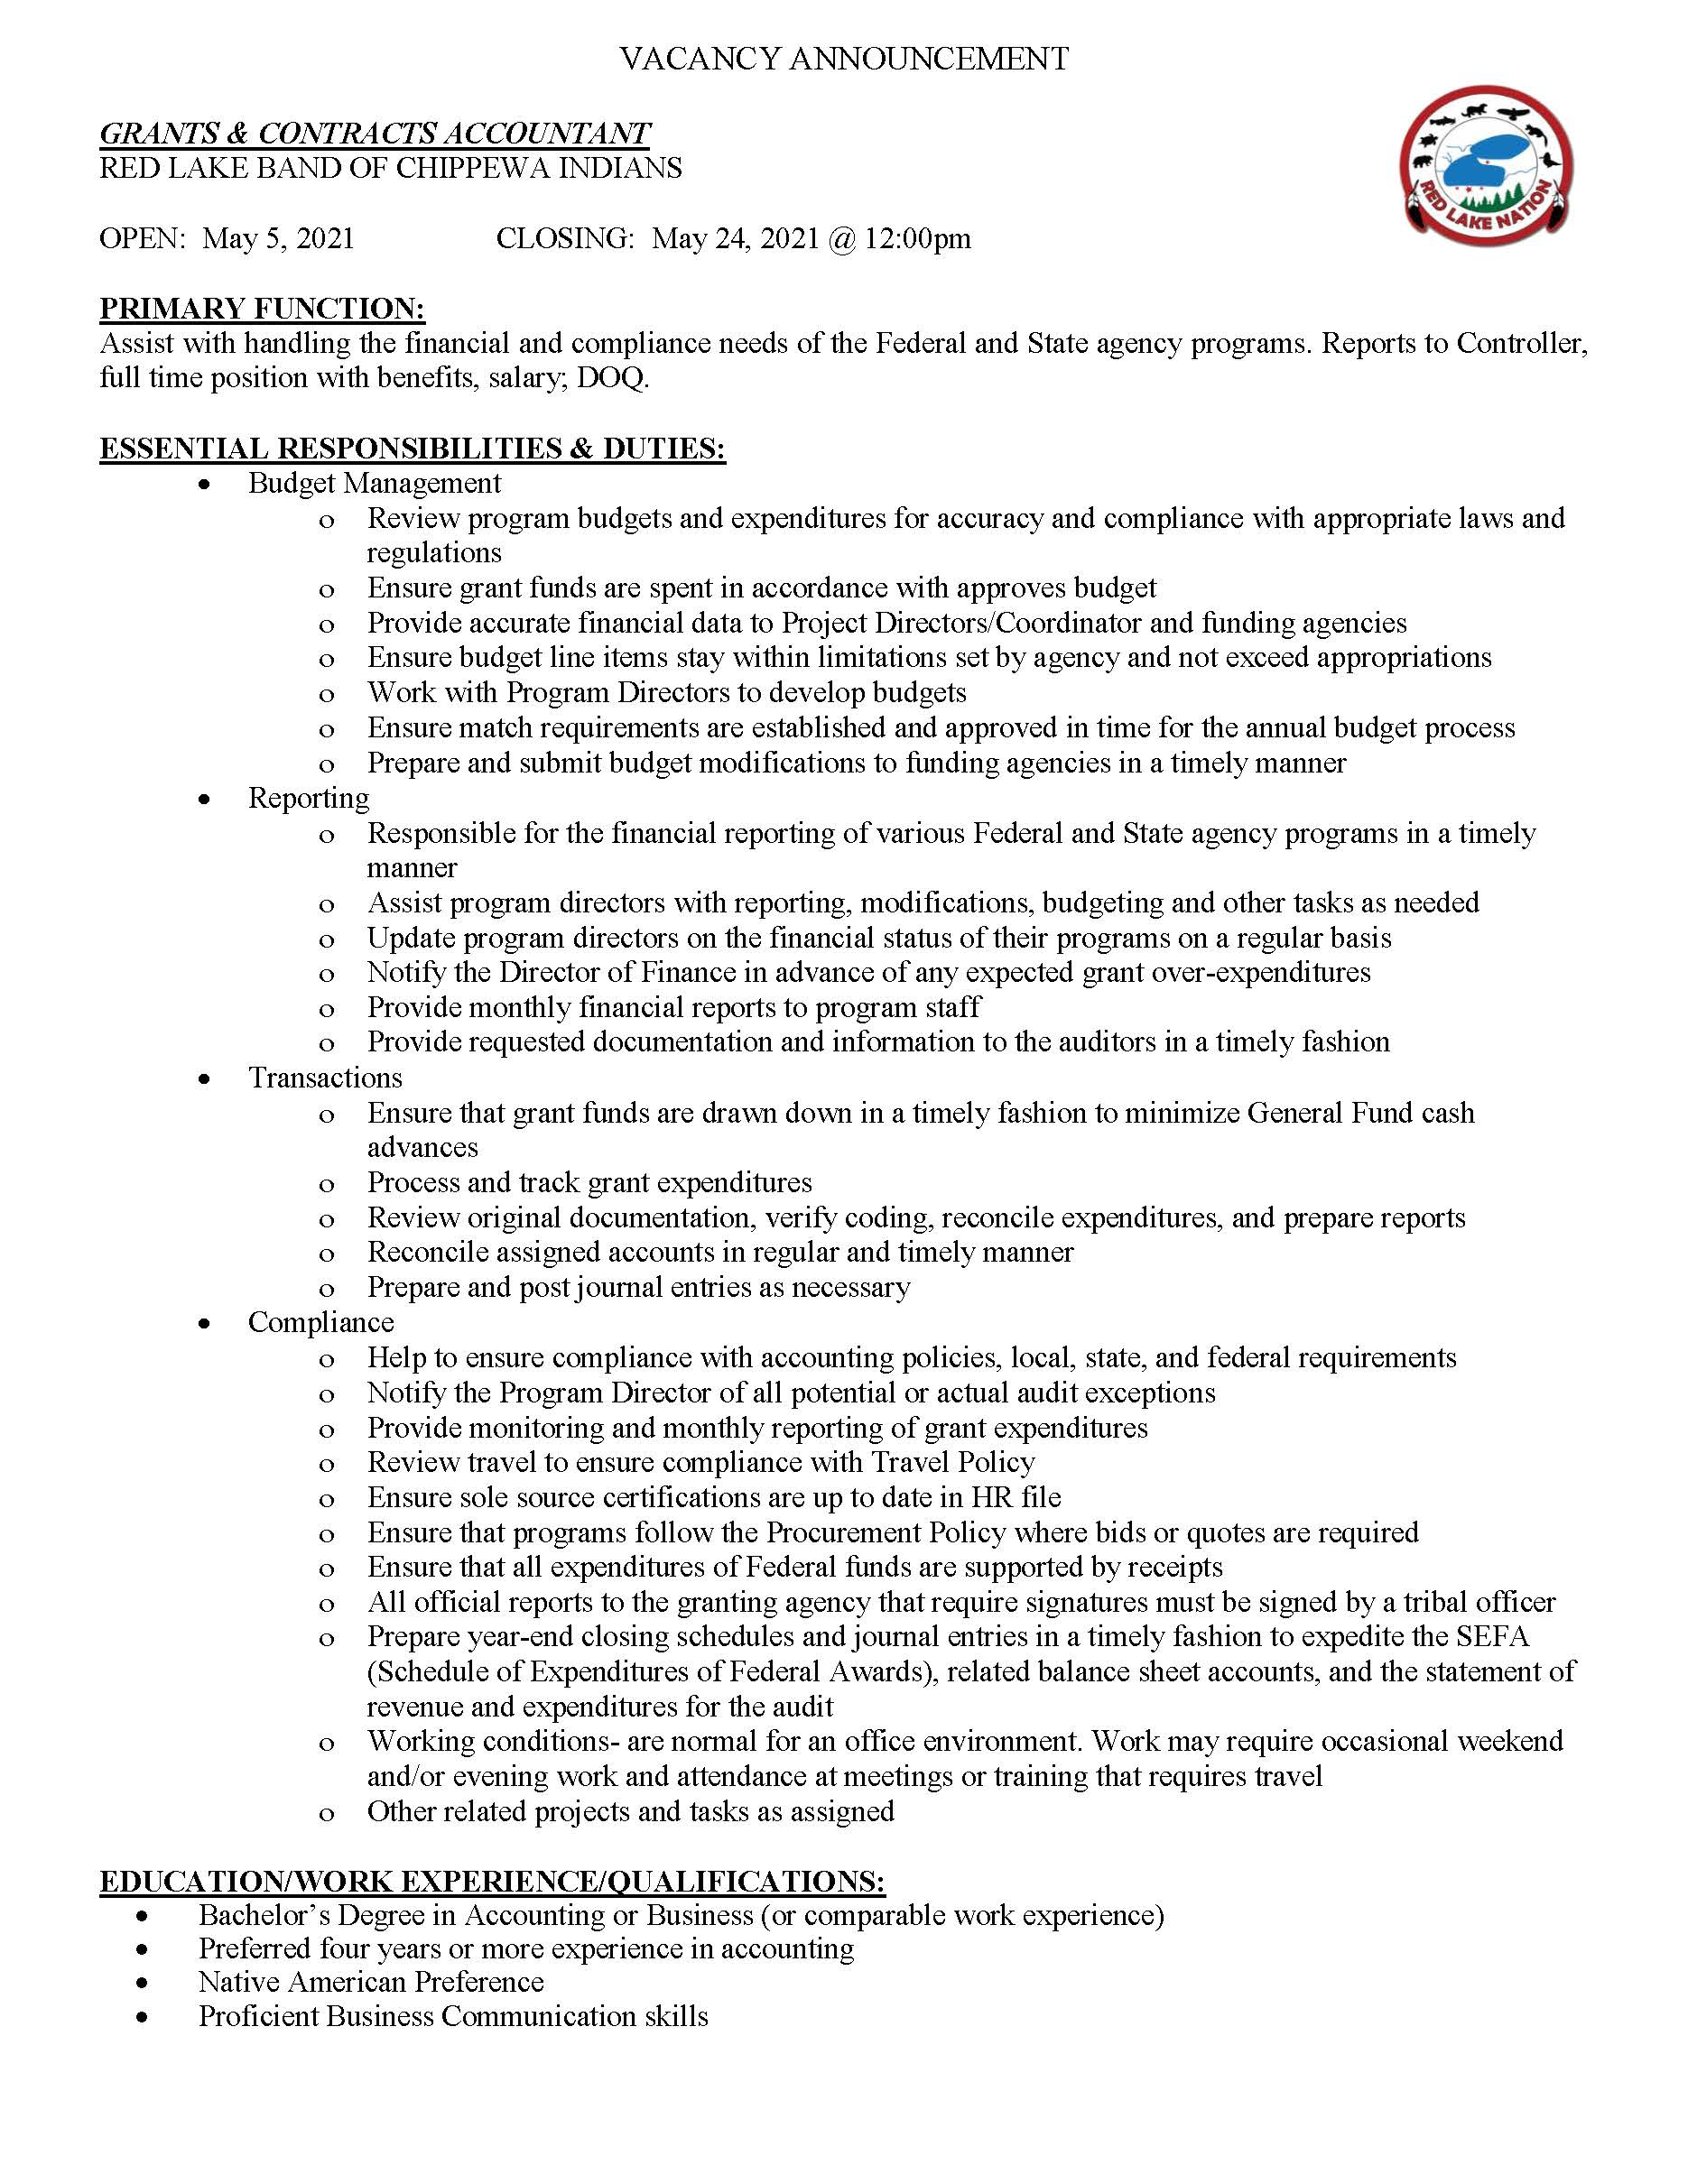 Grants Contracts Accountant Job Posting 5-4-2021_Page_1